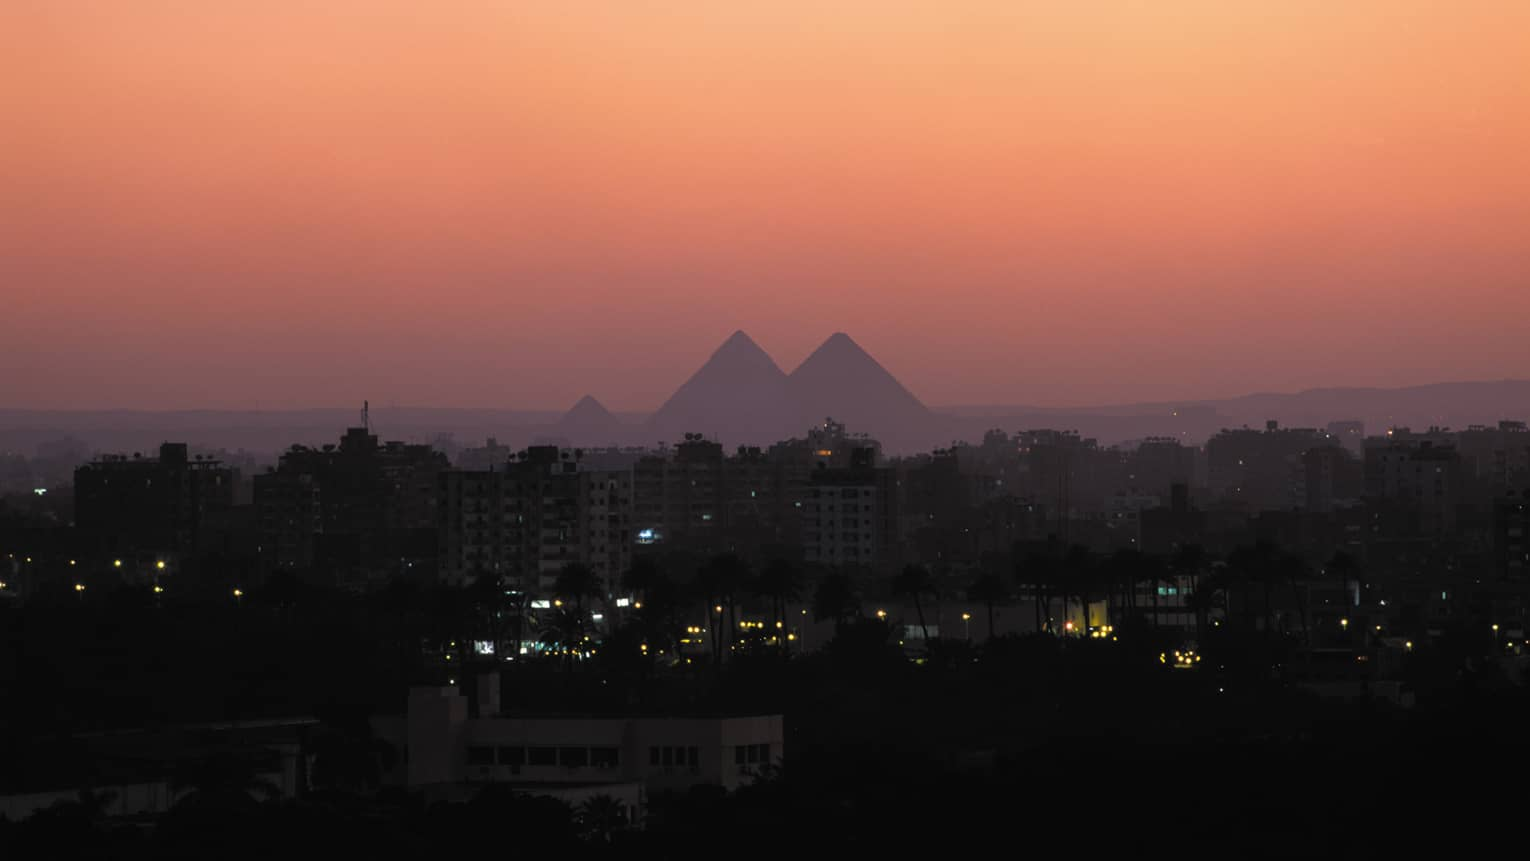 Silhouettes of the Great Pyramids of Giza against a pink sunset